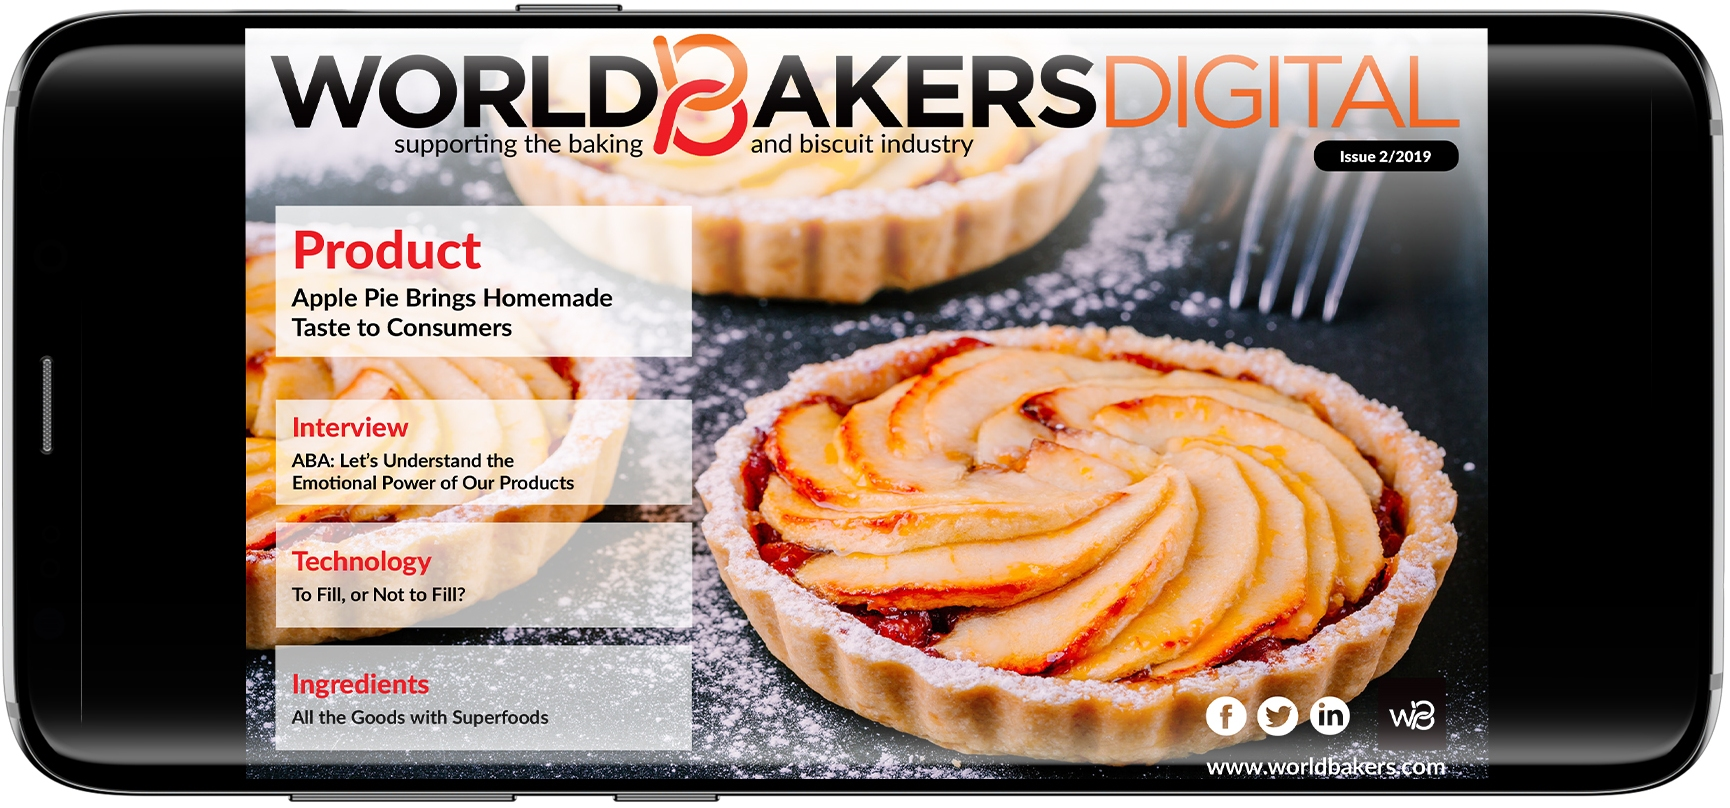 Home - WorldBakers Supporting the baking and biscuit industry